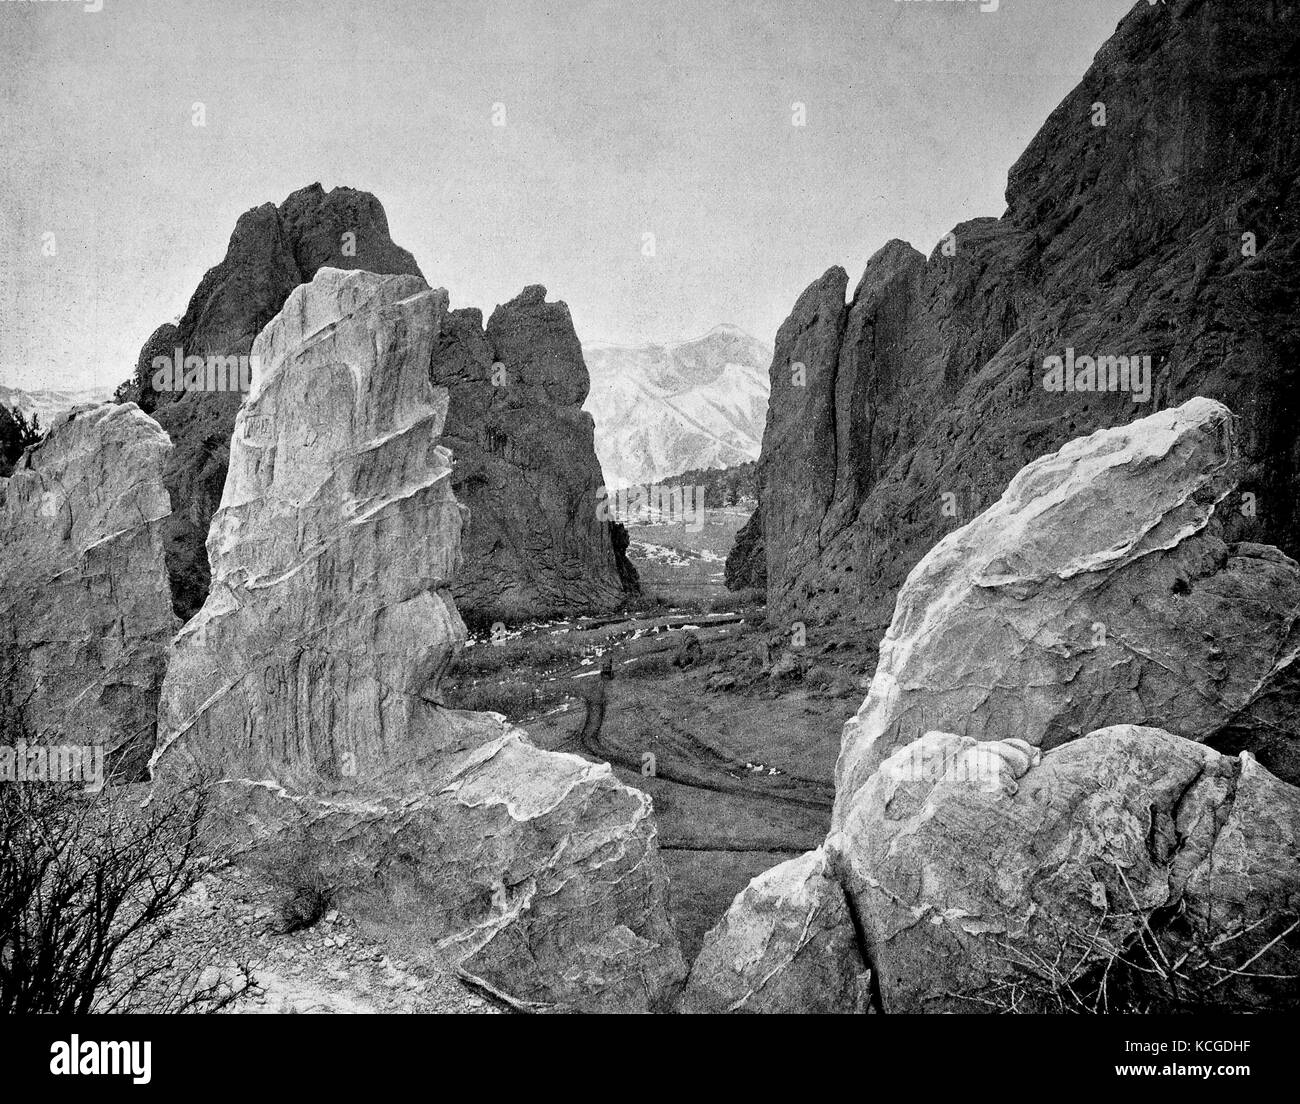 United States of America, landscape at Utah Pass, the Garden of the Gods at the foot of Mount Pikes Peak near Colorado - Stock Image